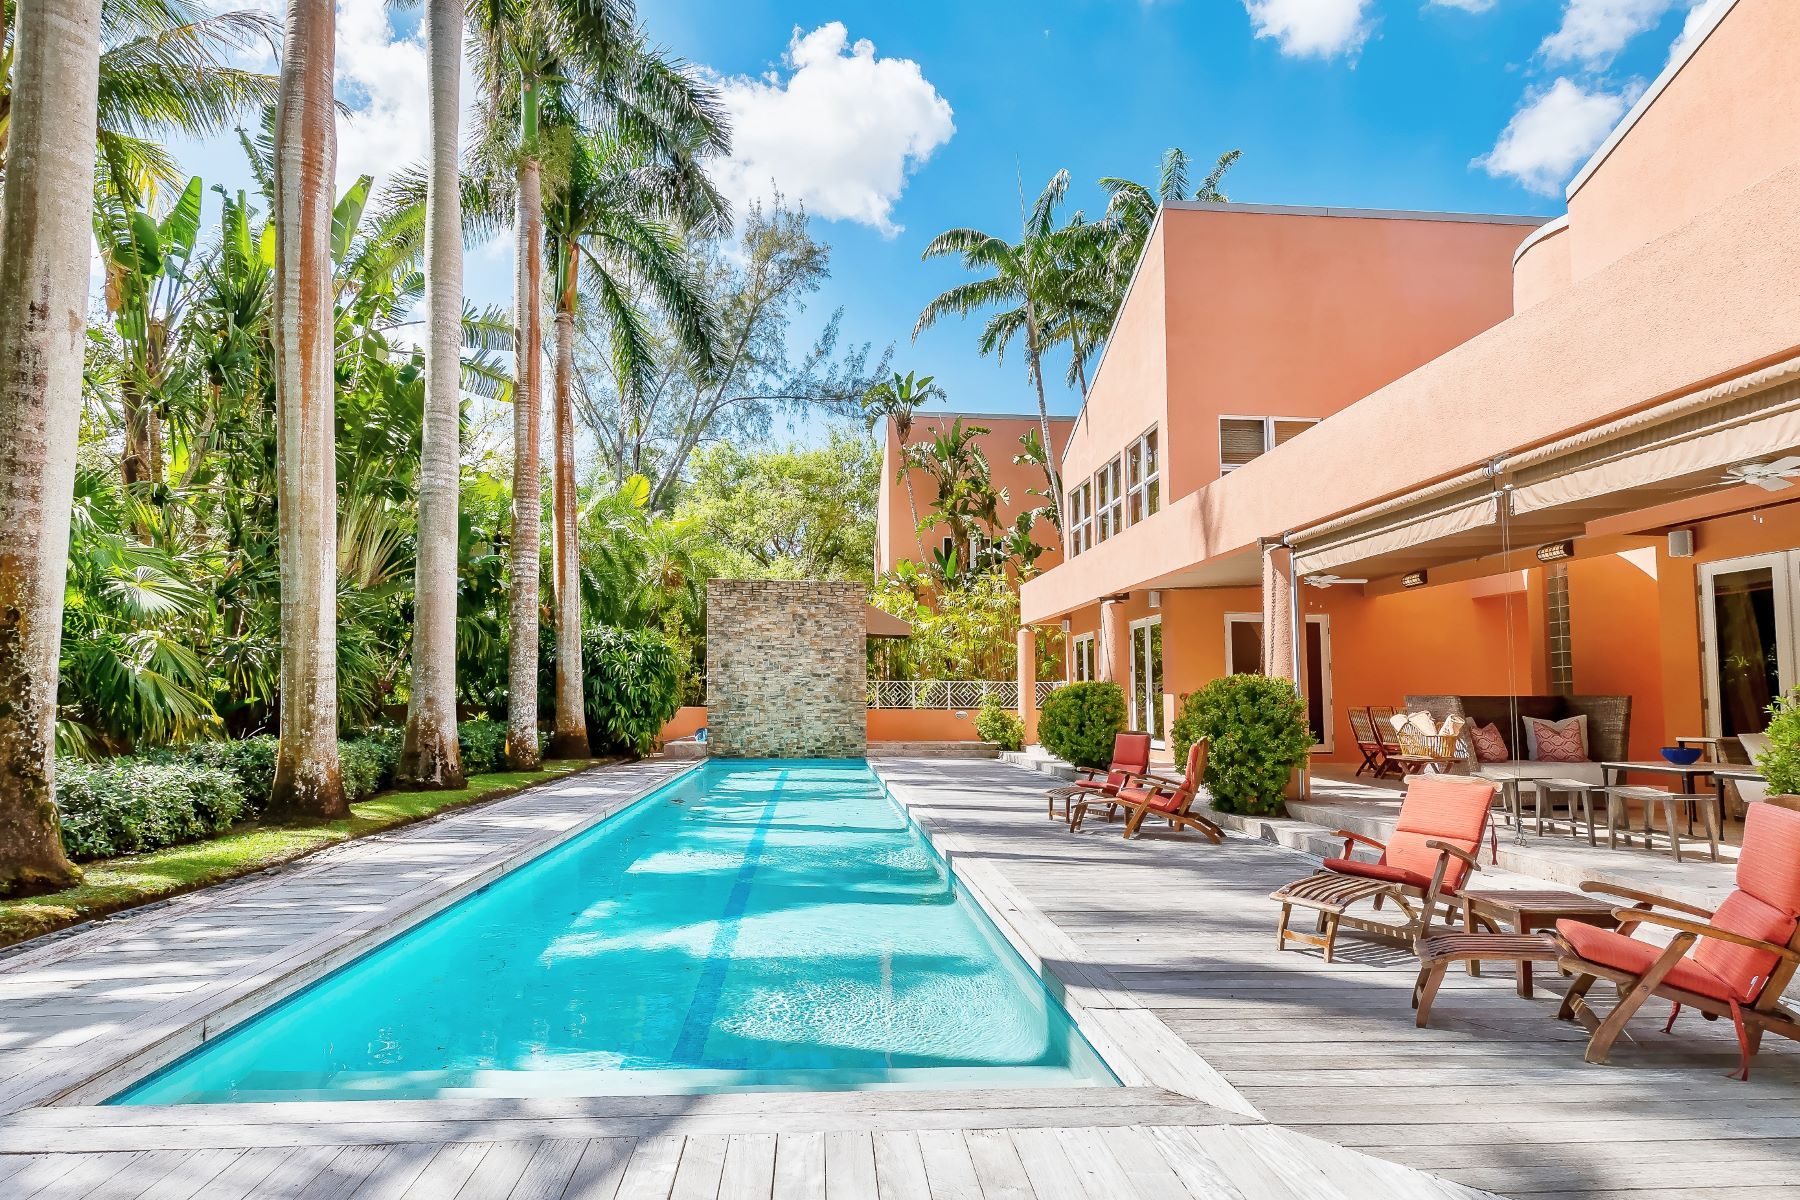 Single Family Home for Sale at 5455 Kerwood Ter Coral Gables, Florida, 33156 United States